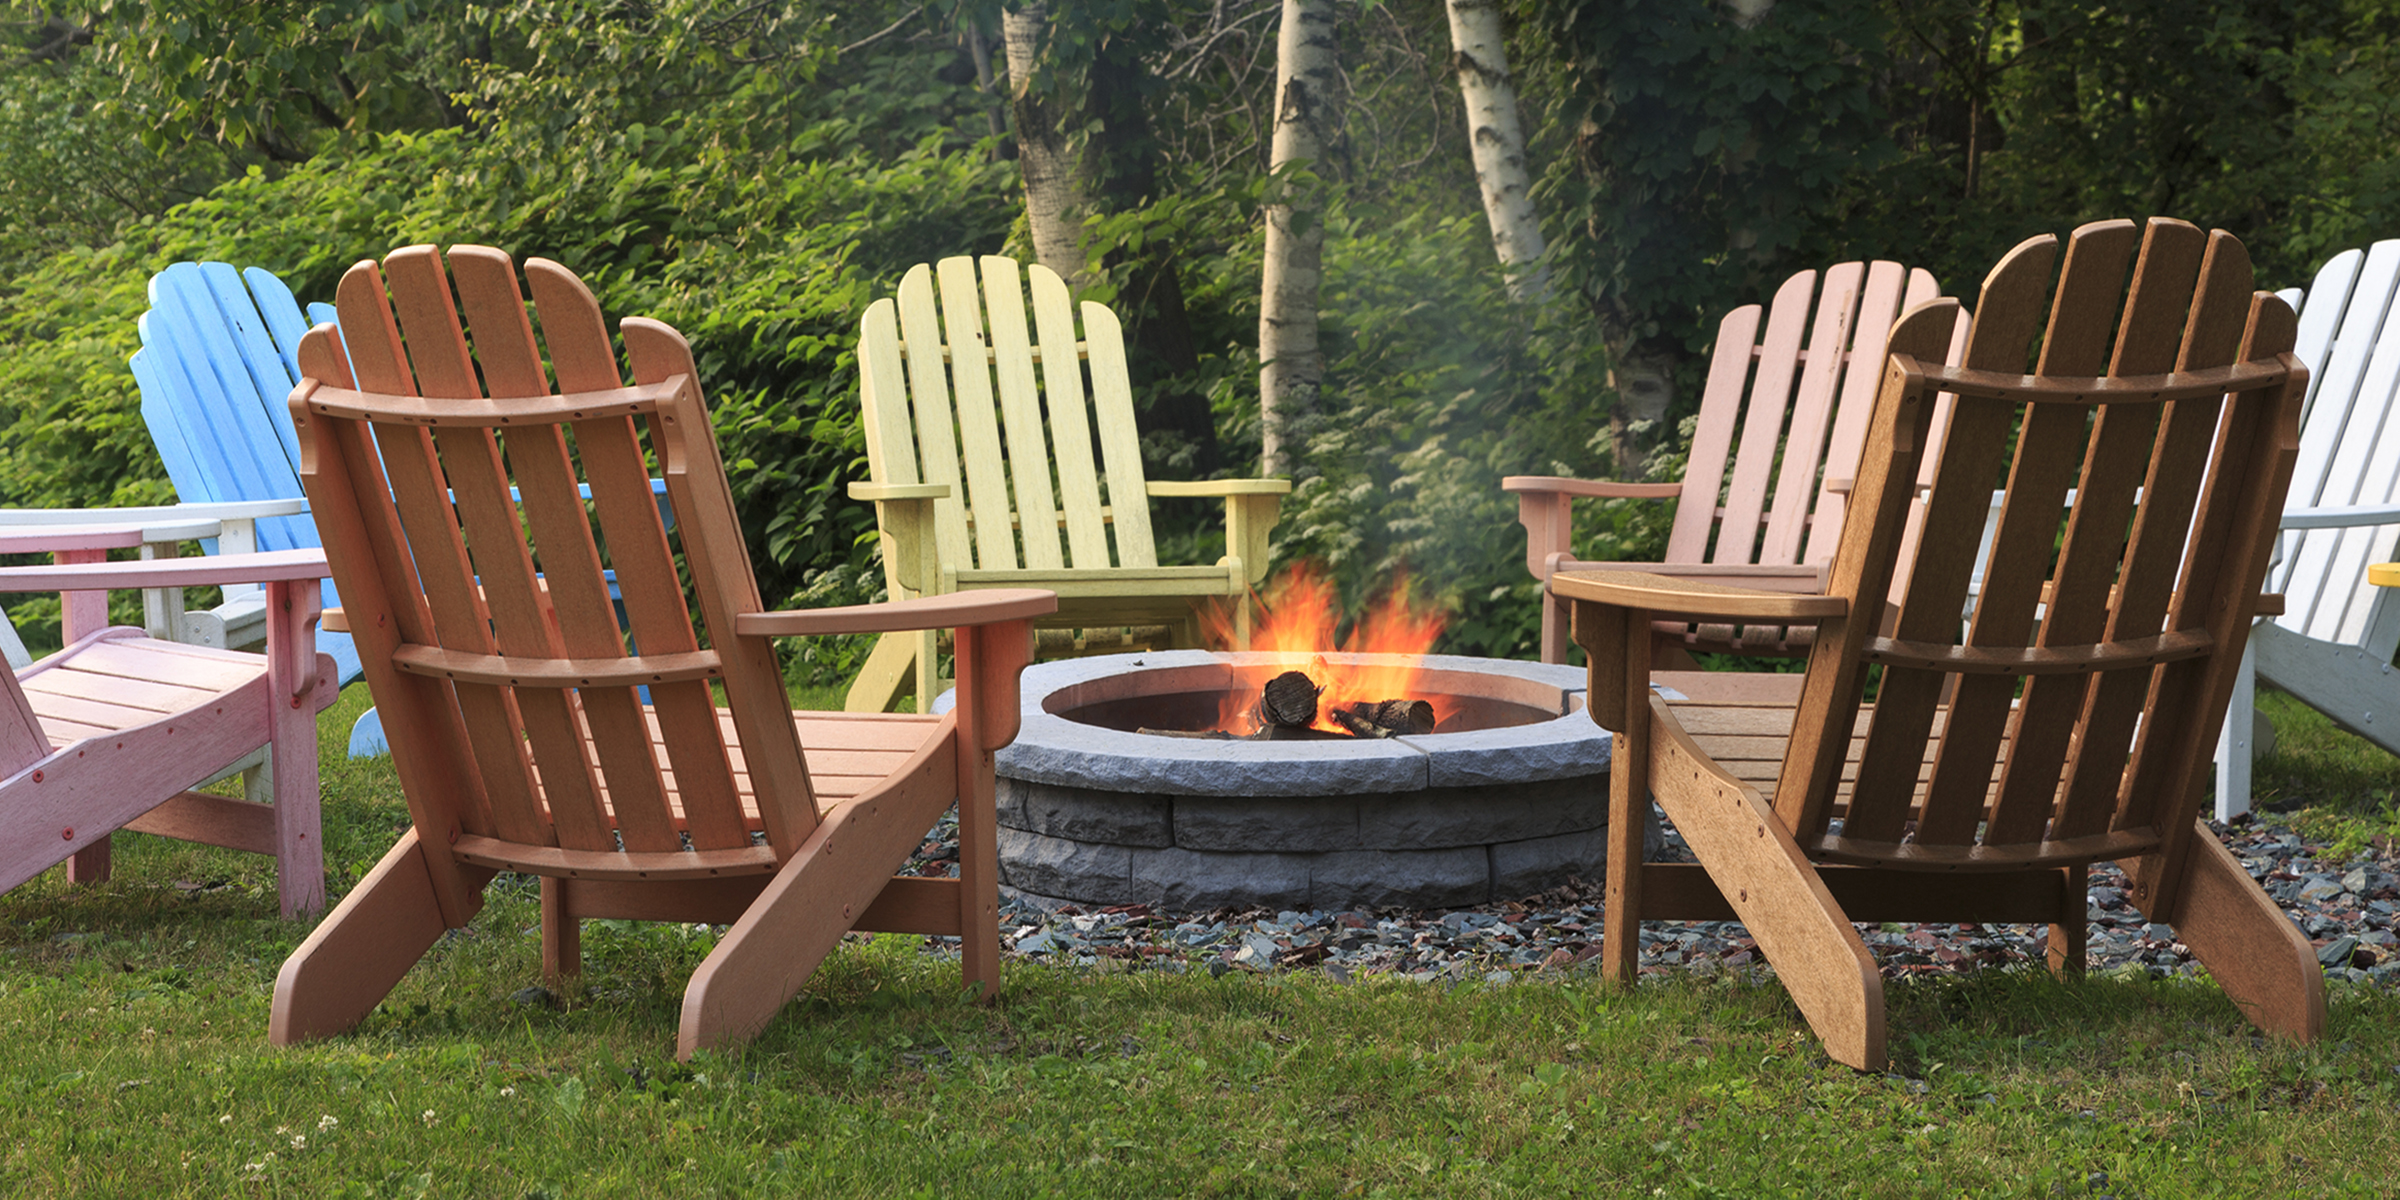 25 Outdoor Fire Pits And Accessories To Enjoy This Summer